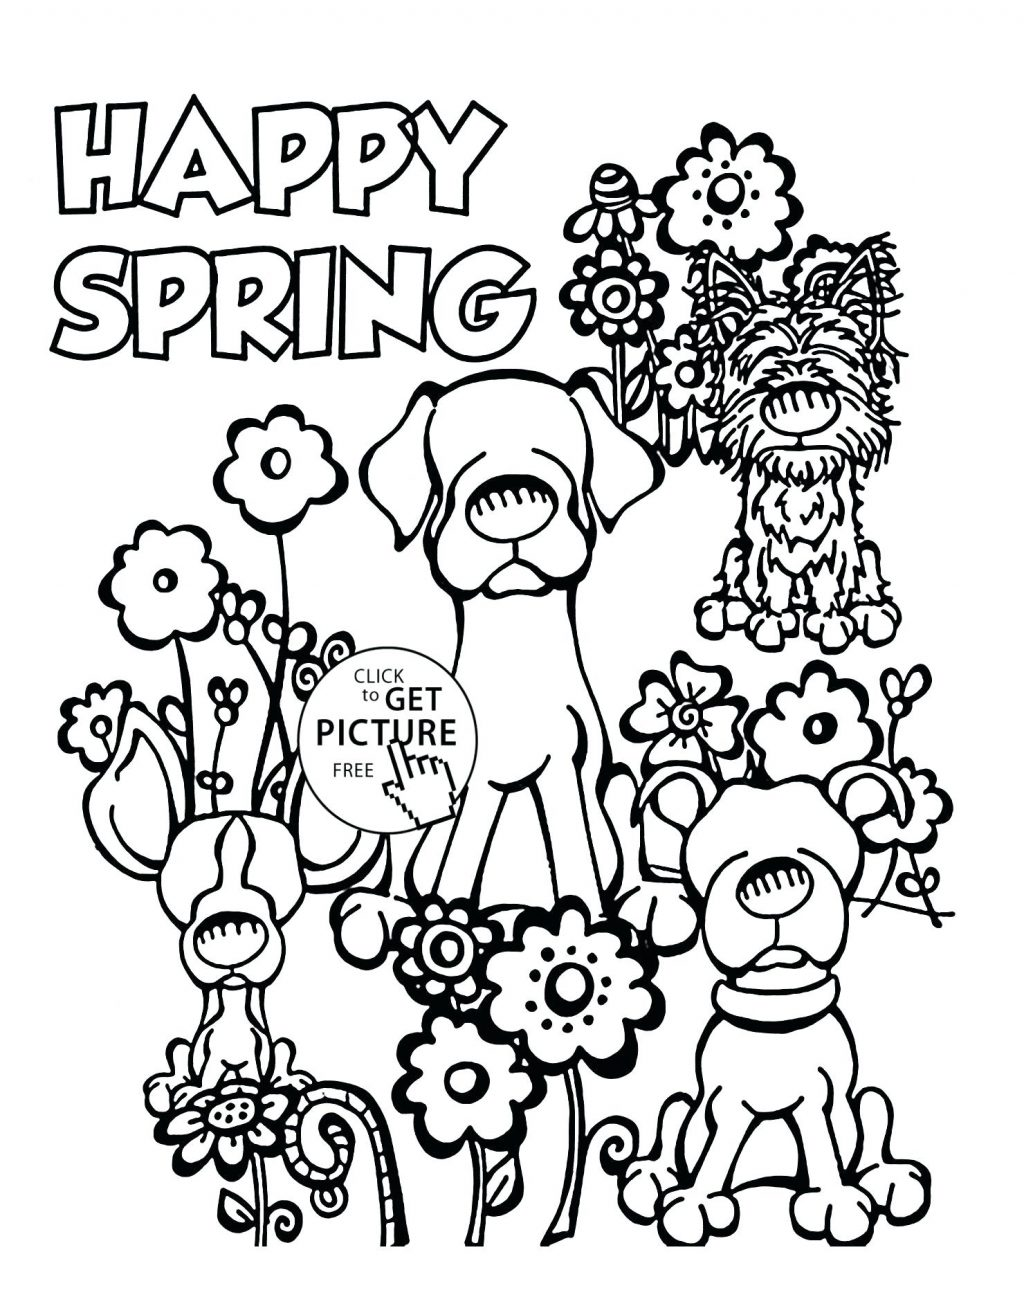 Springtrap Coloring Pages At Getcolorings